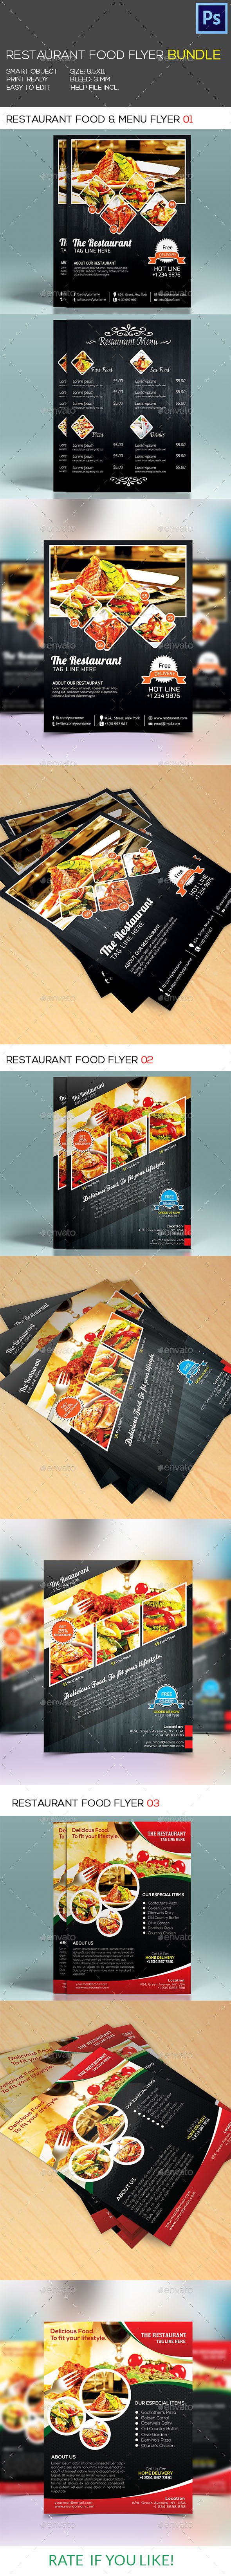 GraphicRiver Restaurant Food & Menu Flyer Bundle 9493658